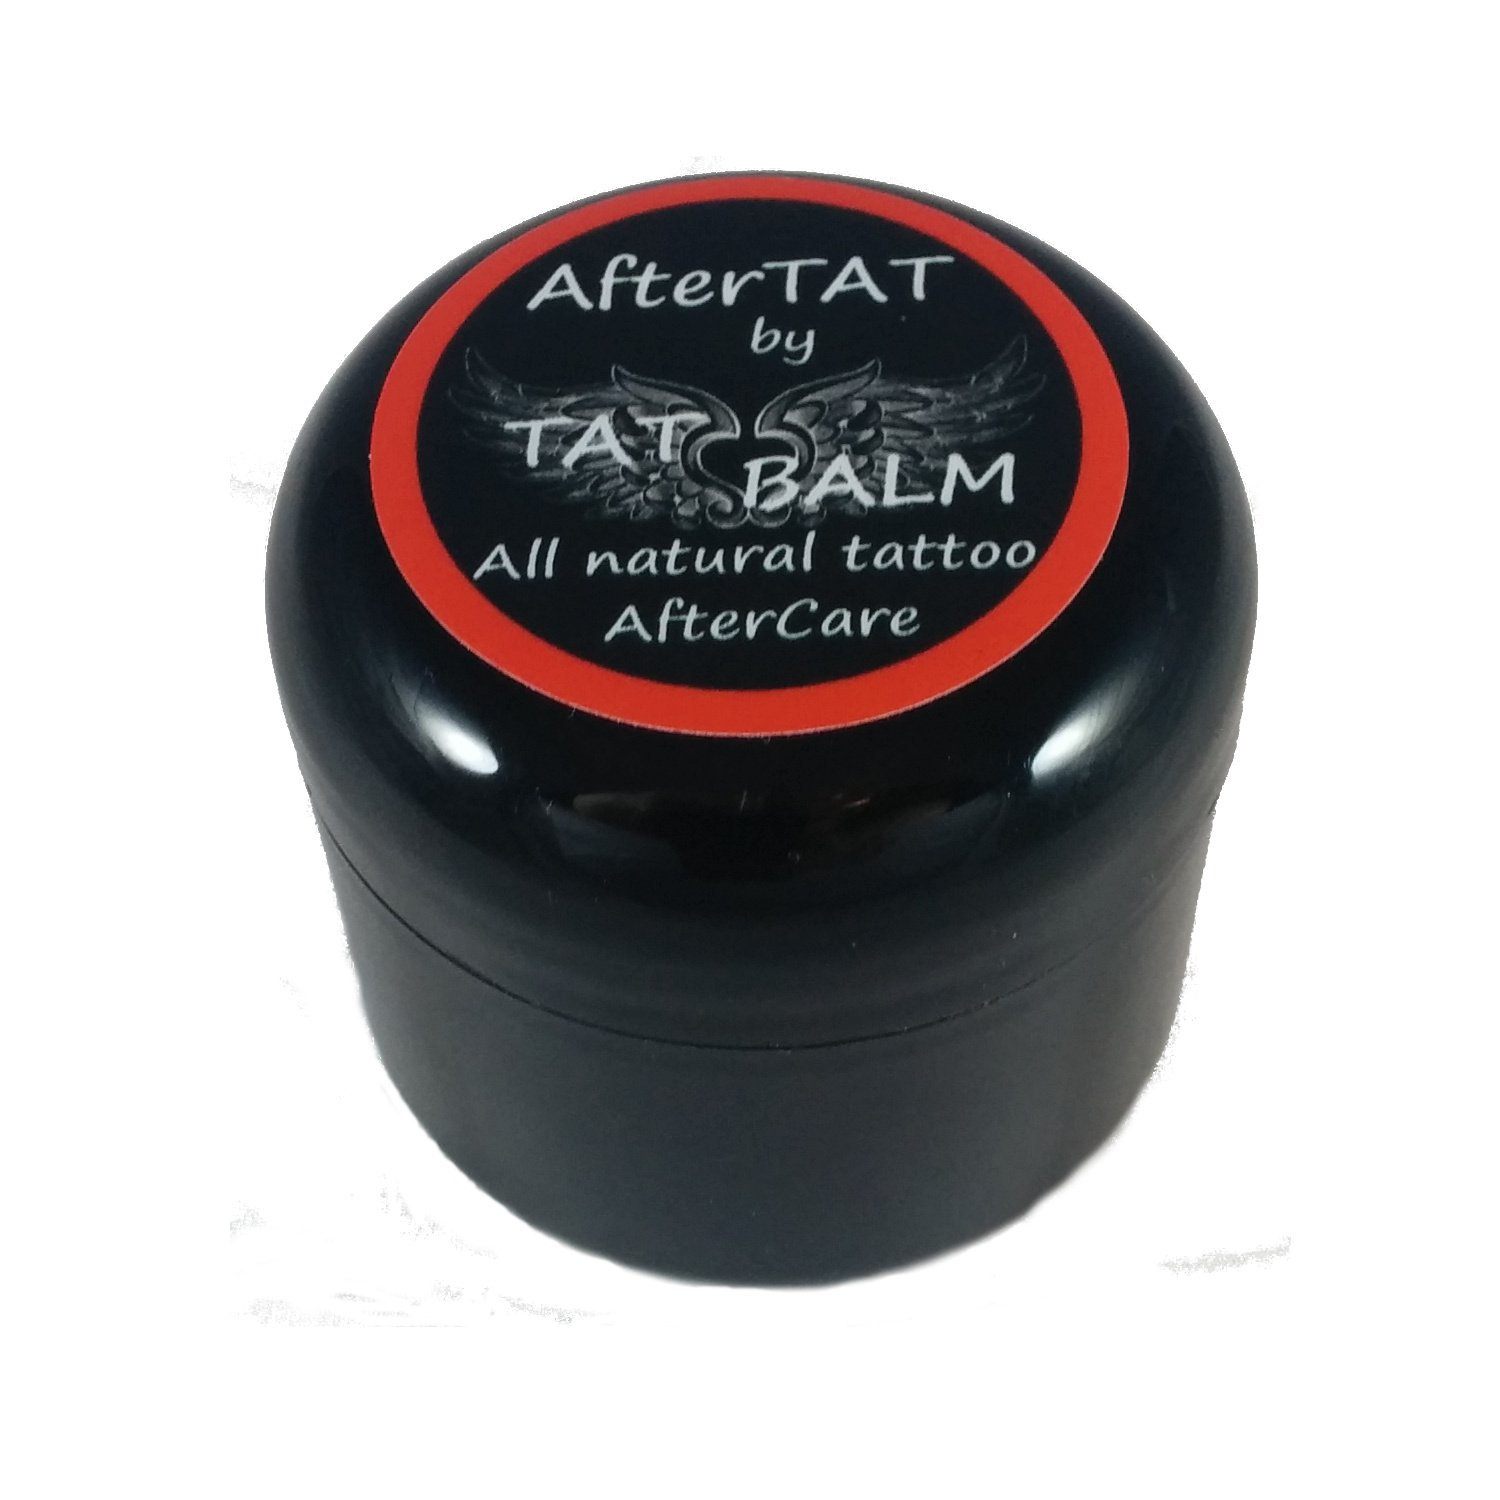 Tattoo Fast Healing, Infection & Itch Relief Aftercare - All Natural TAT Balm (2 ounce)